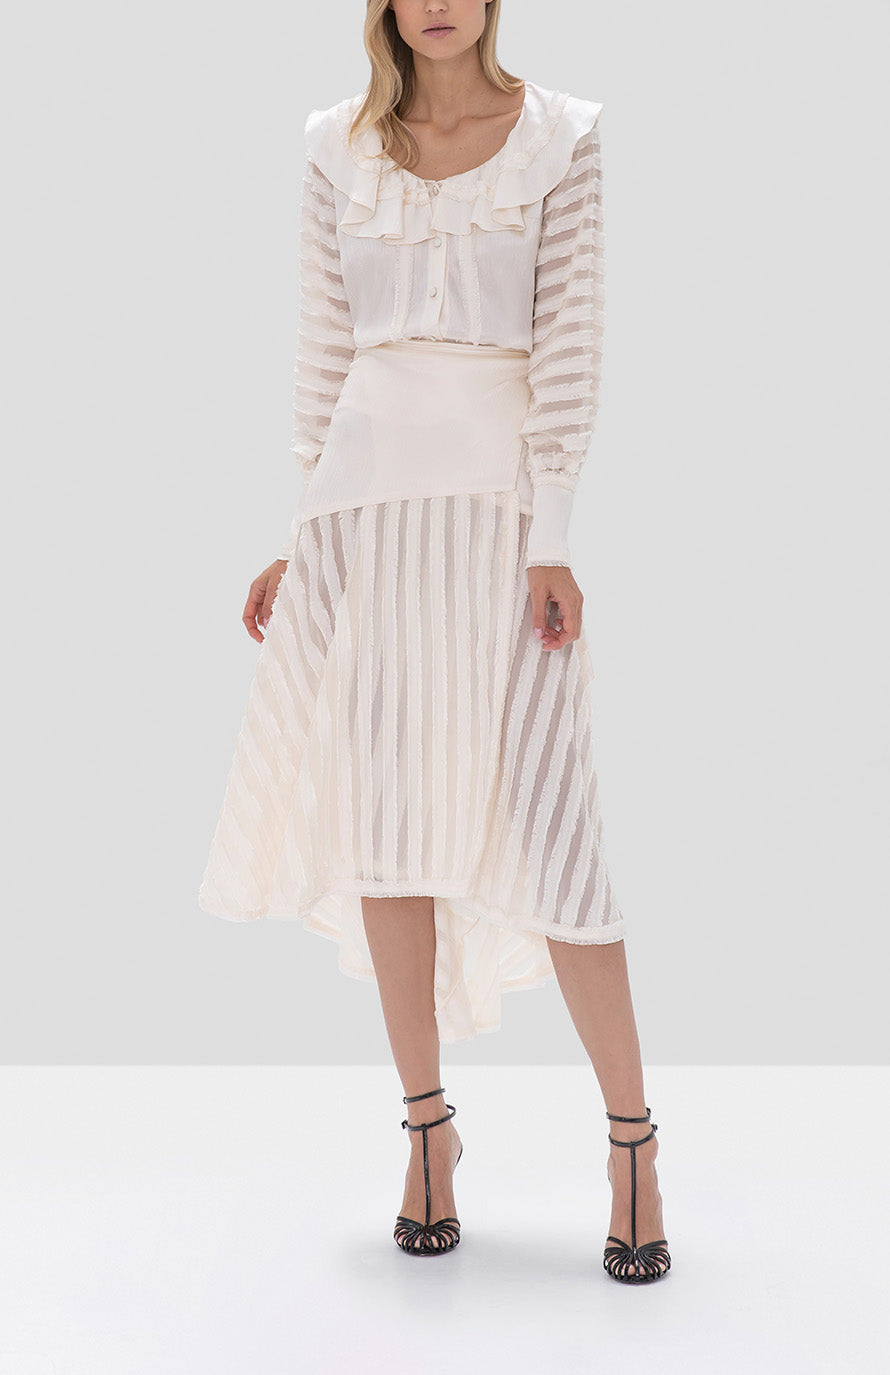 Alexis Melata Top and Danos Skirt in Off White from the Fall Winter 2019 Ready To Wear Collection - Rear View